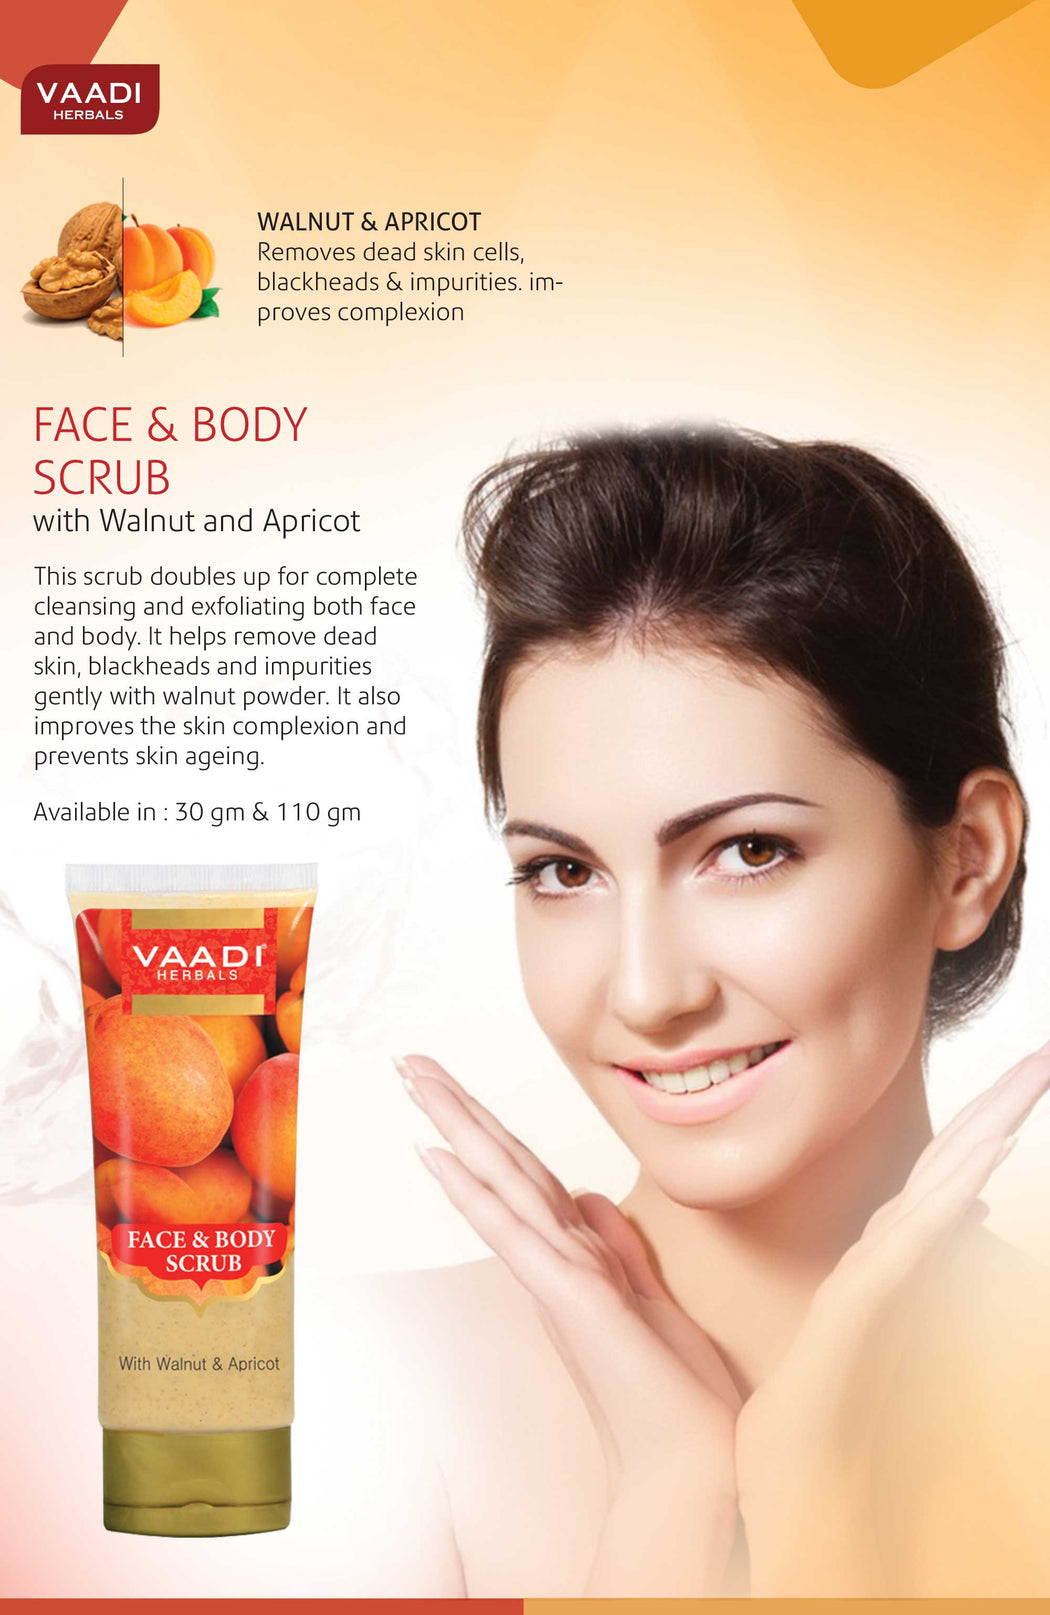 Organic Face & Body Scrub with Walnut & Apricot - Exfoliates & Unclogs Pores - Keeps Skin Youthful ( 110 gms / 4 oz)